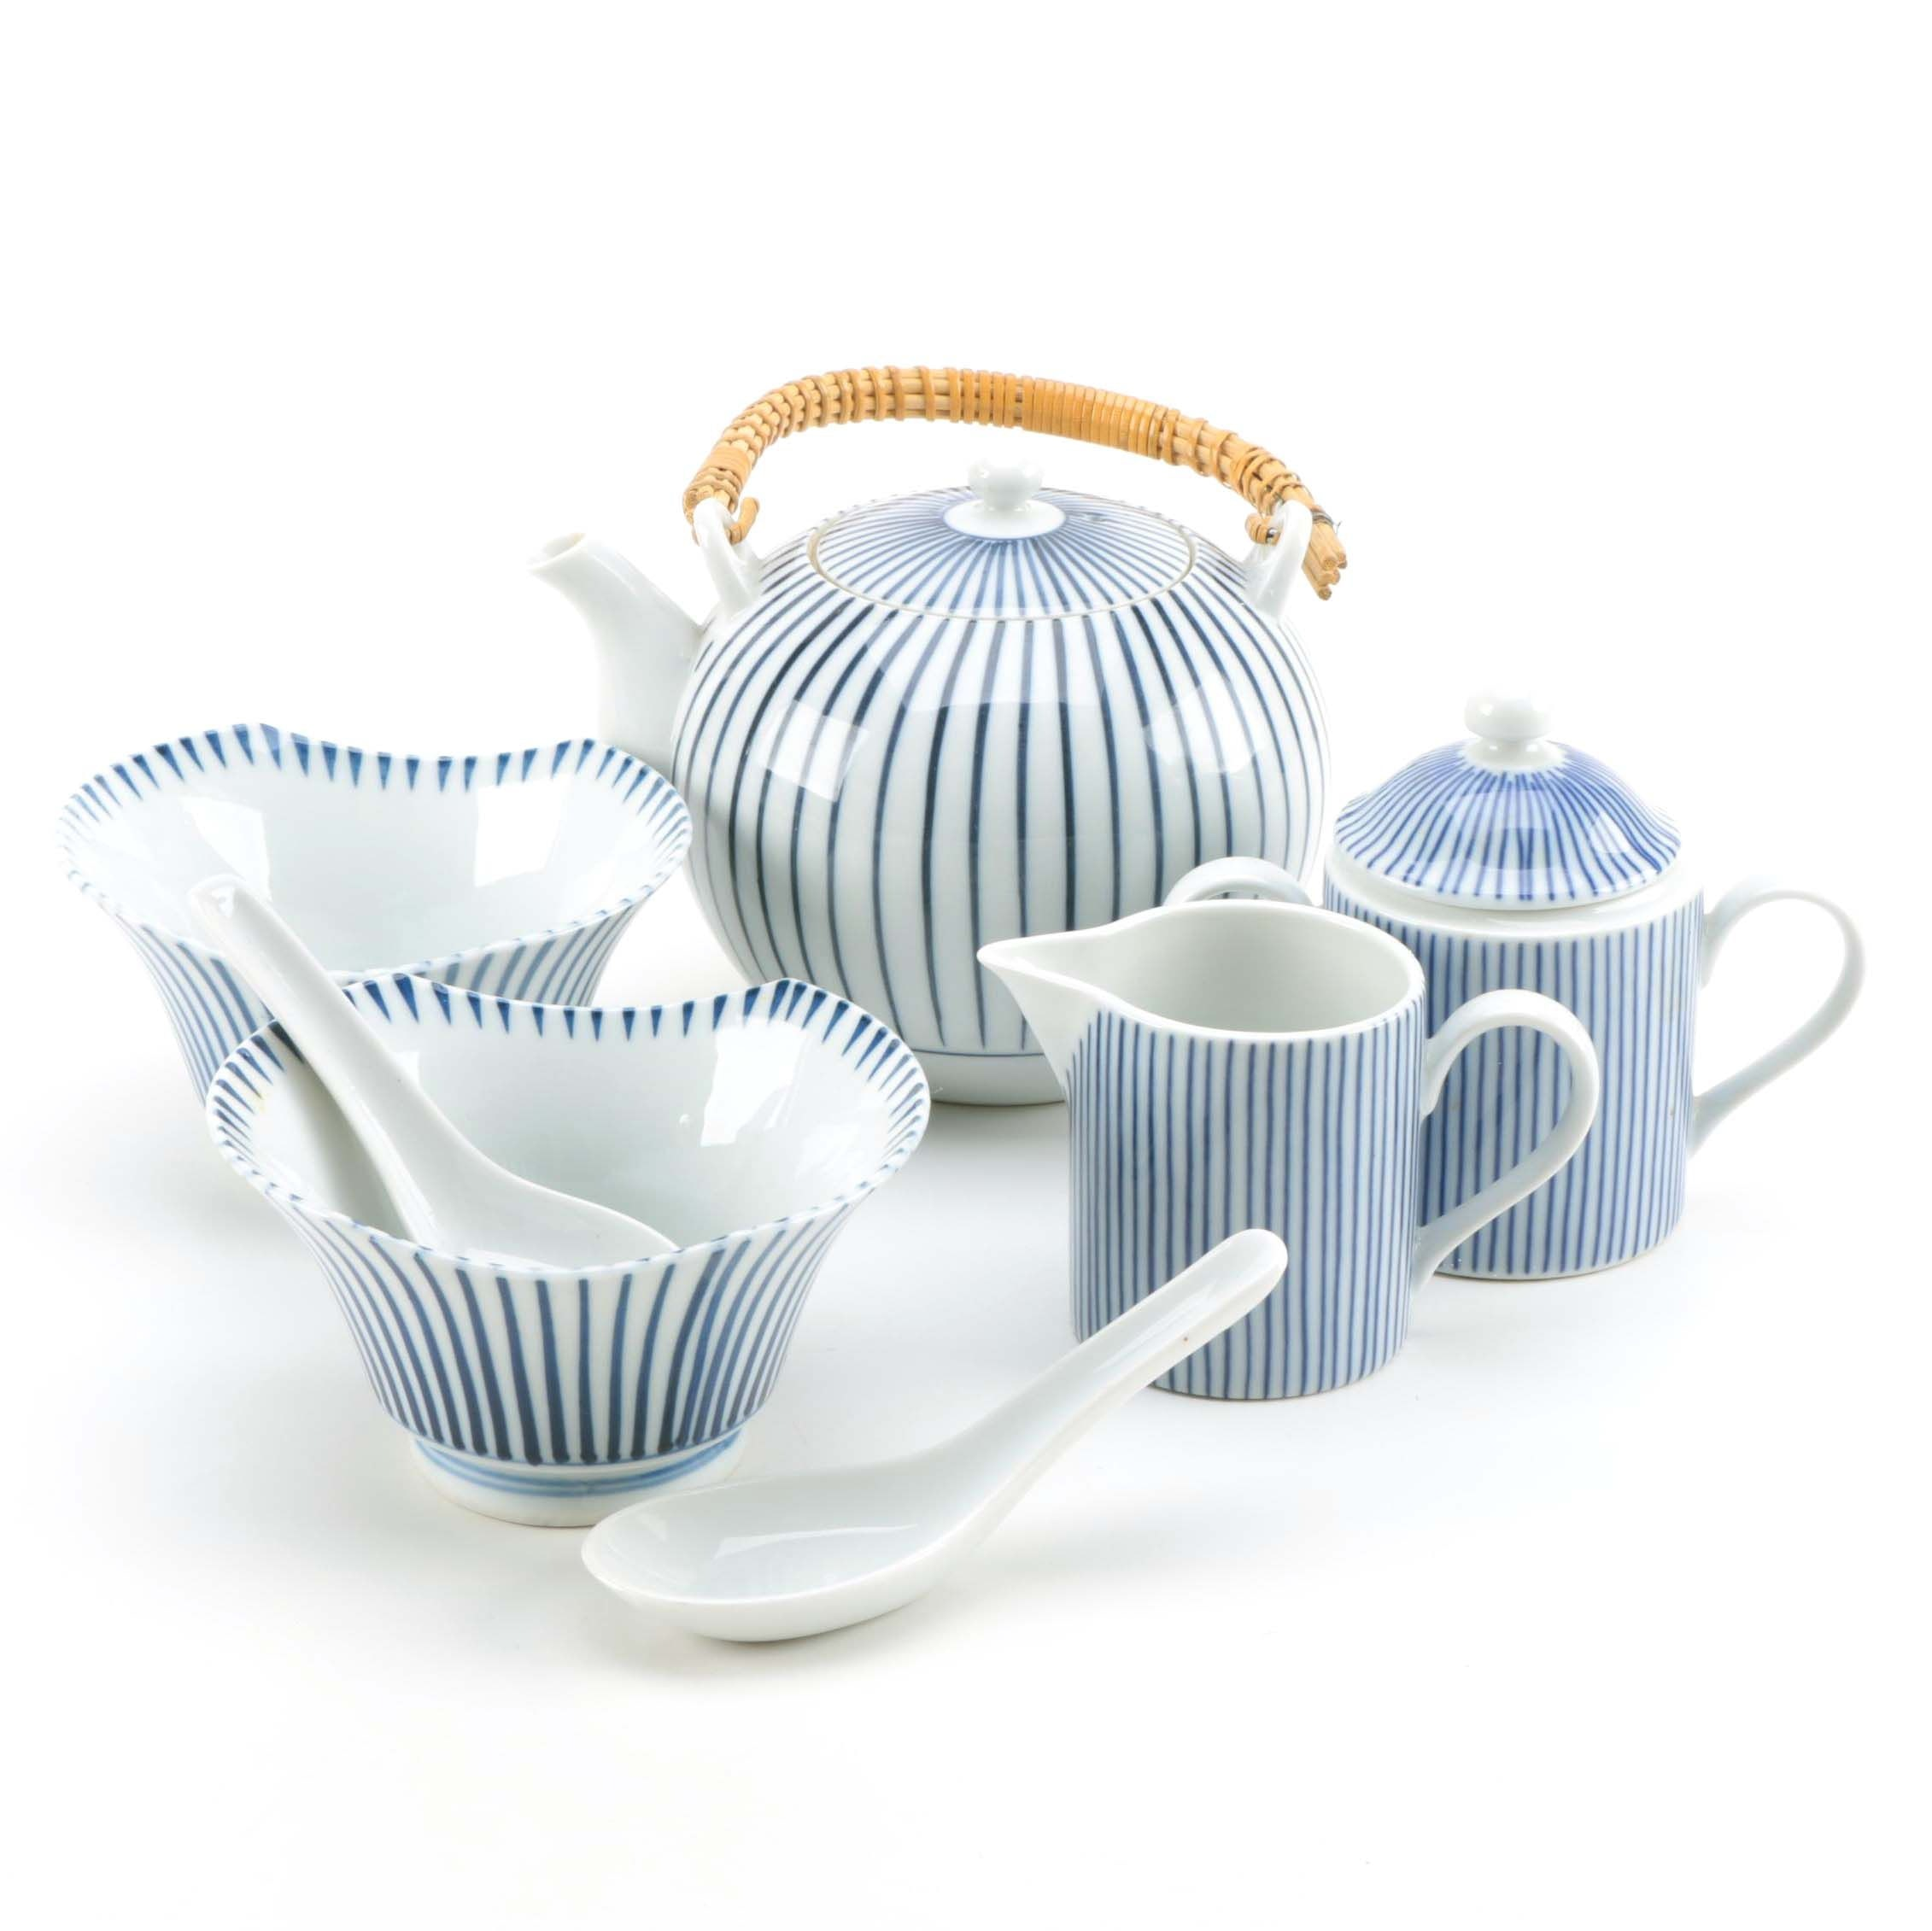 Blue and White Porcelain Tableware Featuring Fitz and Floyd